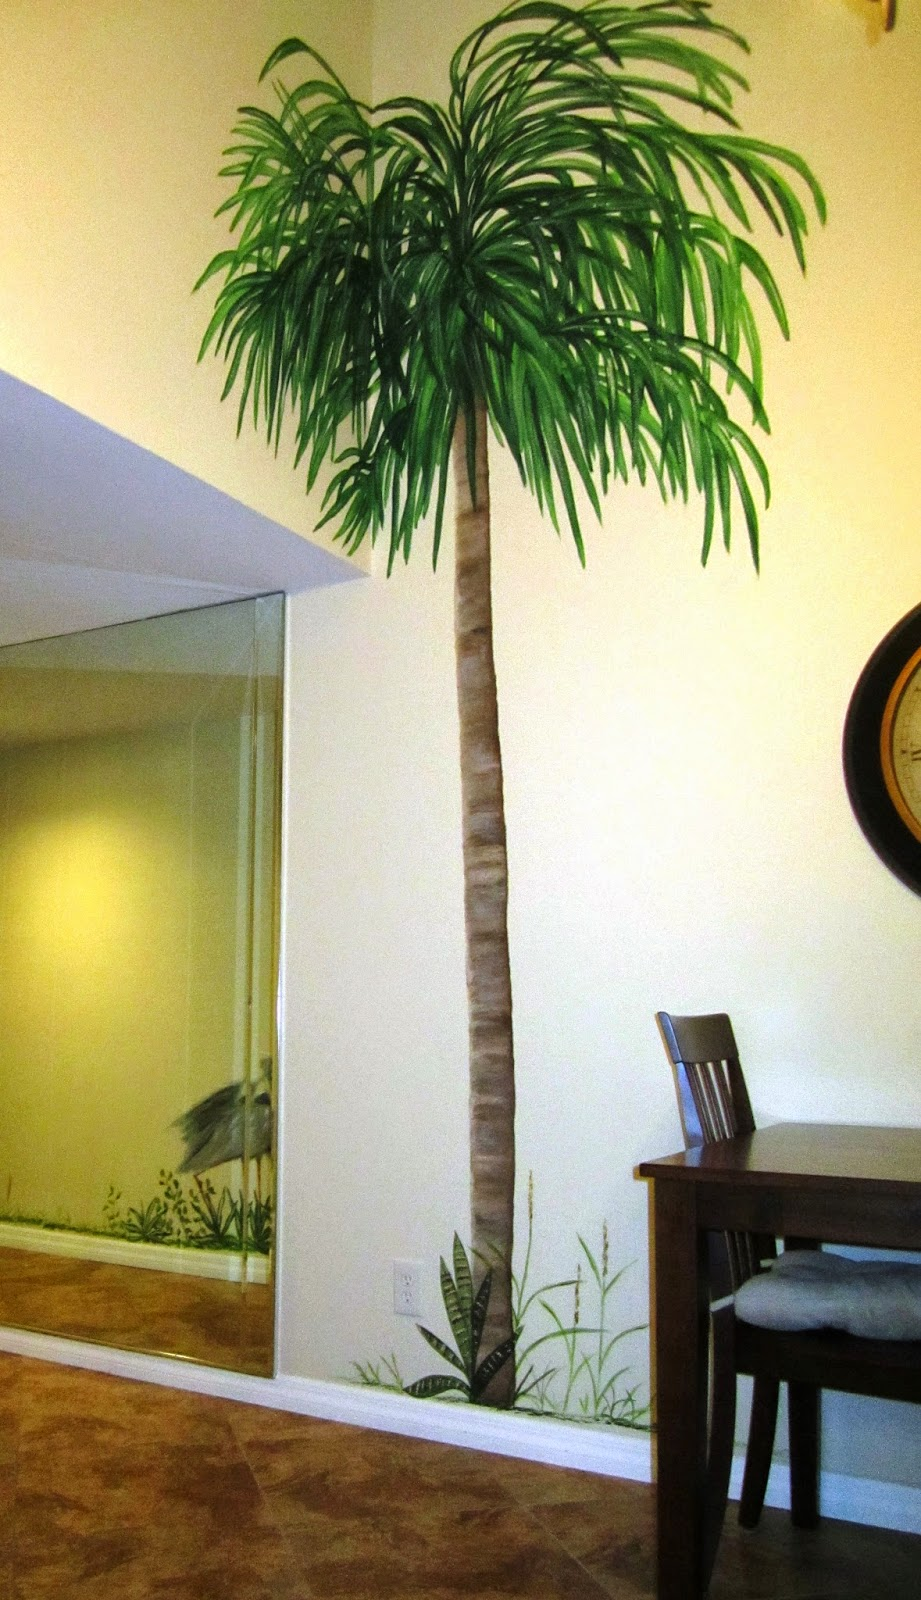 mural painting where the palm trees sway swan studios mural palm trees accentuate the dining wall niche